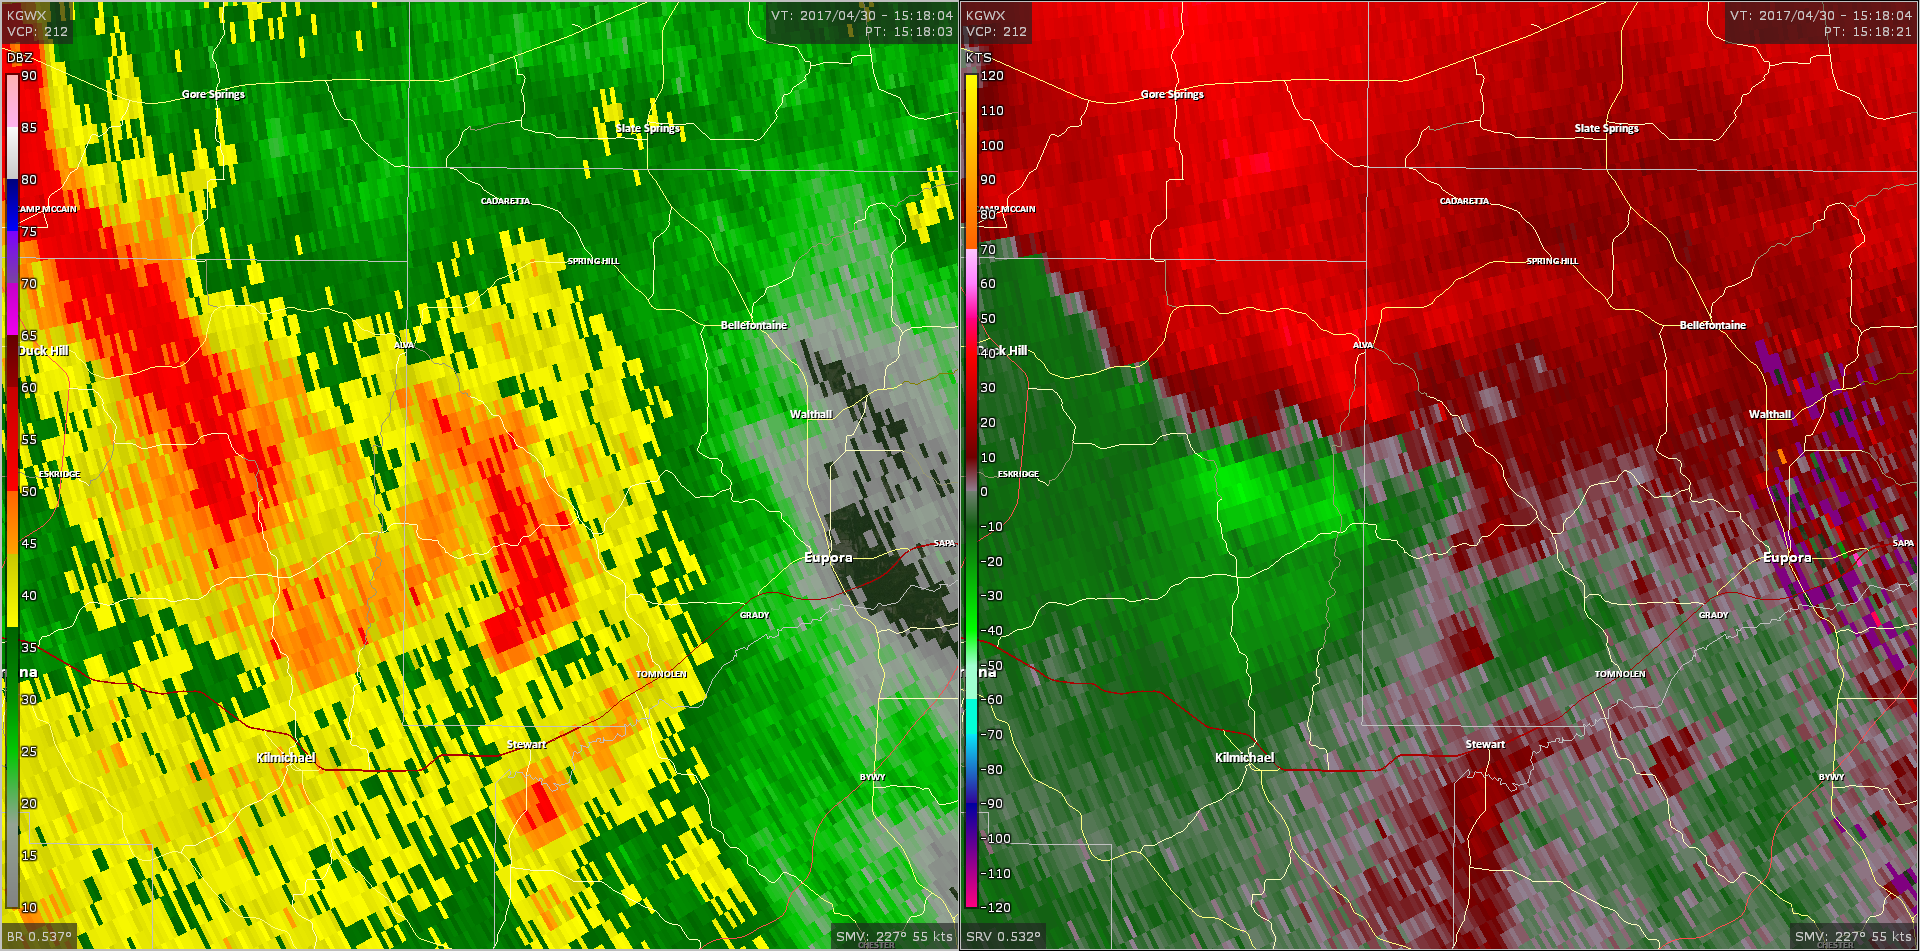 Radar - Montgomery Webster County Tornado